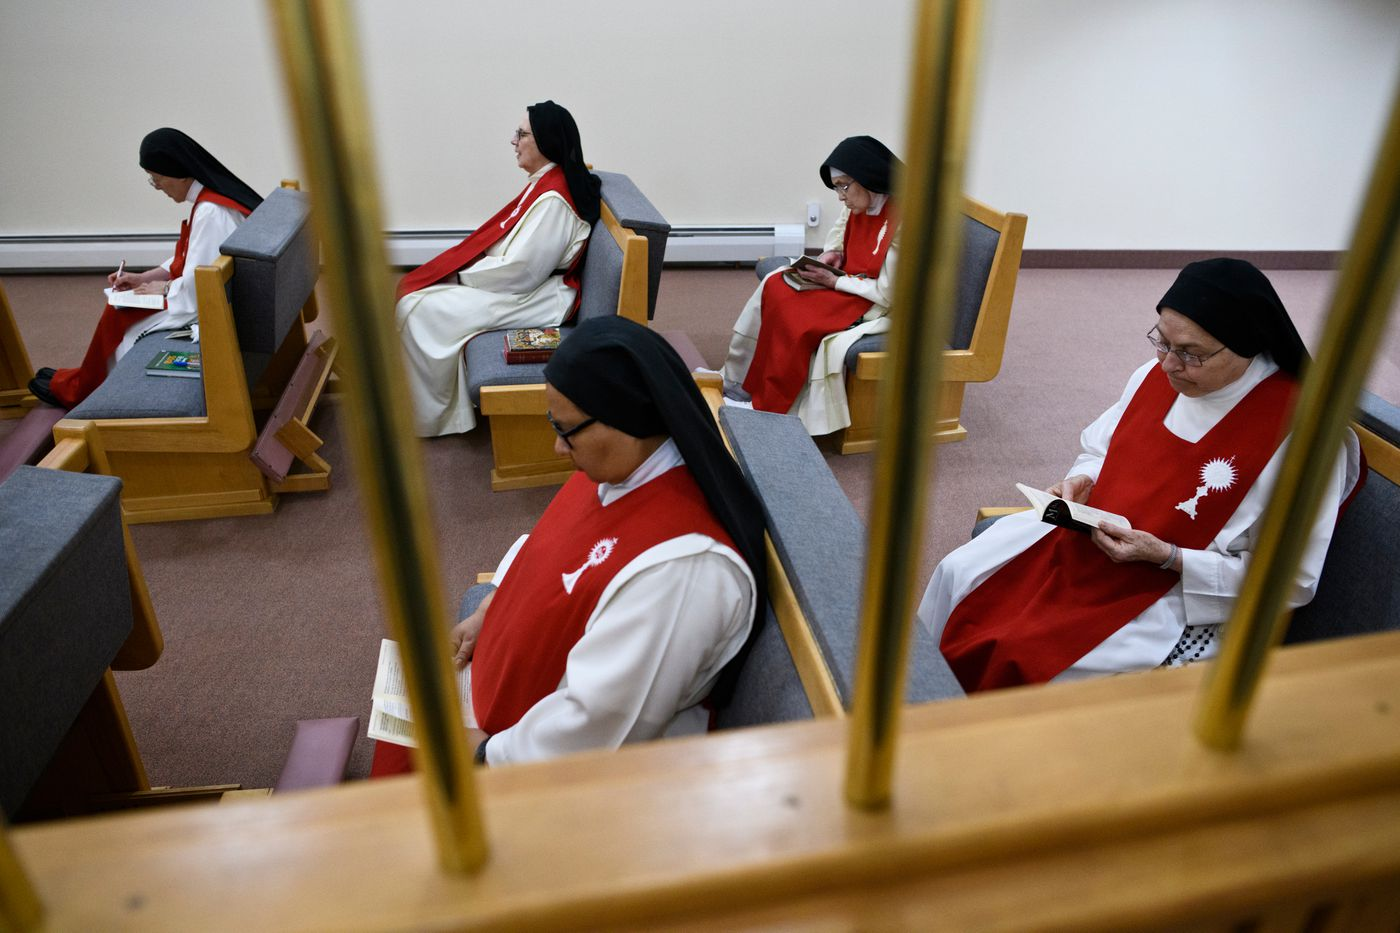 The Sisters of Perpetual Adoration read in an area of their chapel separated from the public portion. (Marc Lester / ADN)